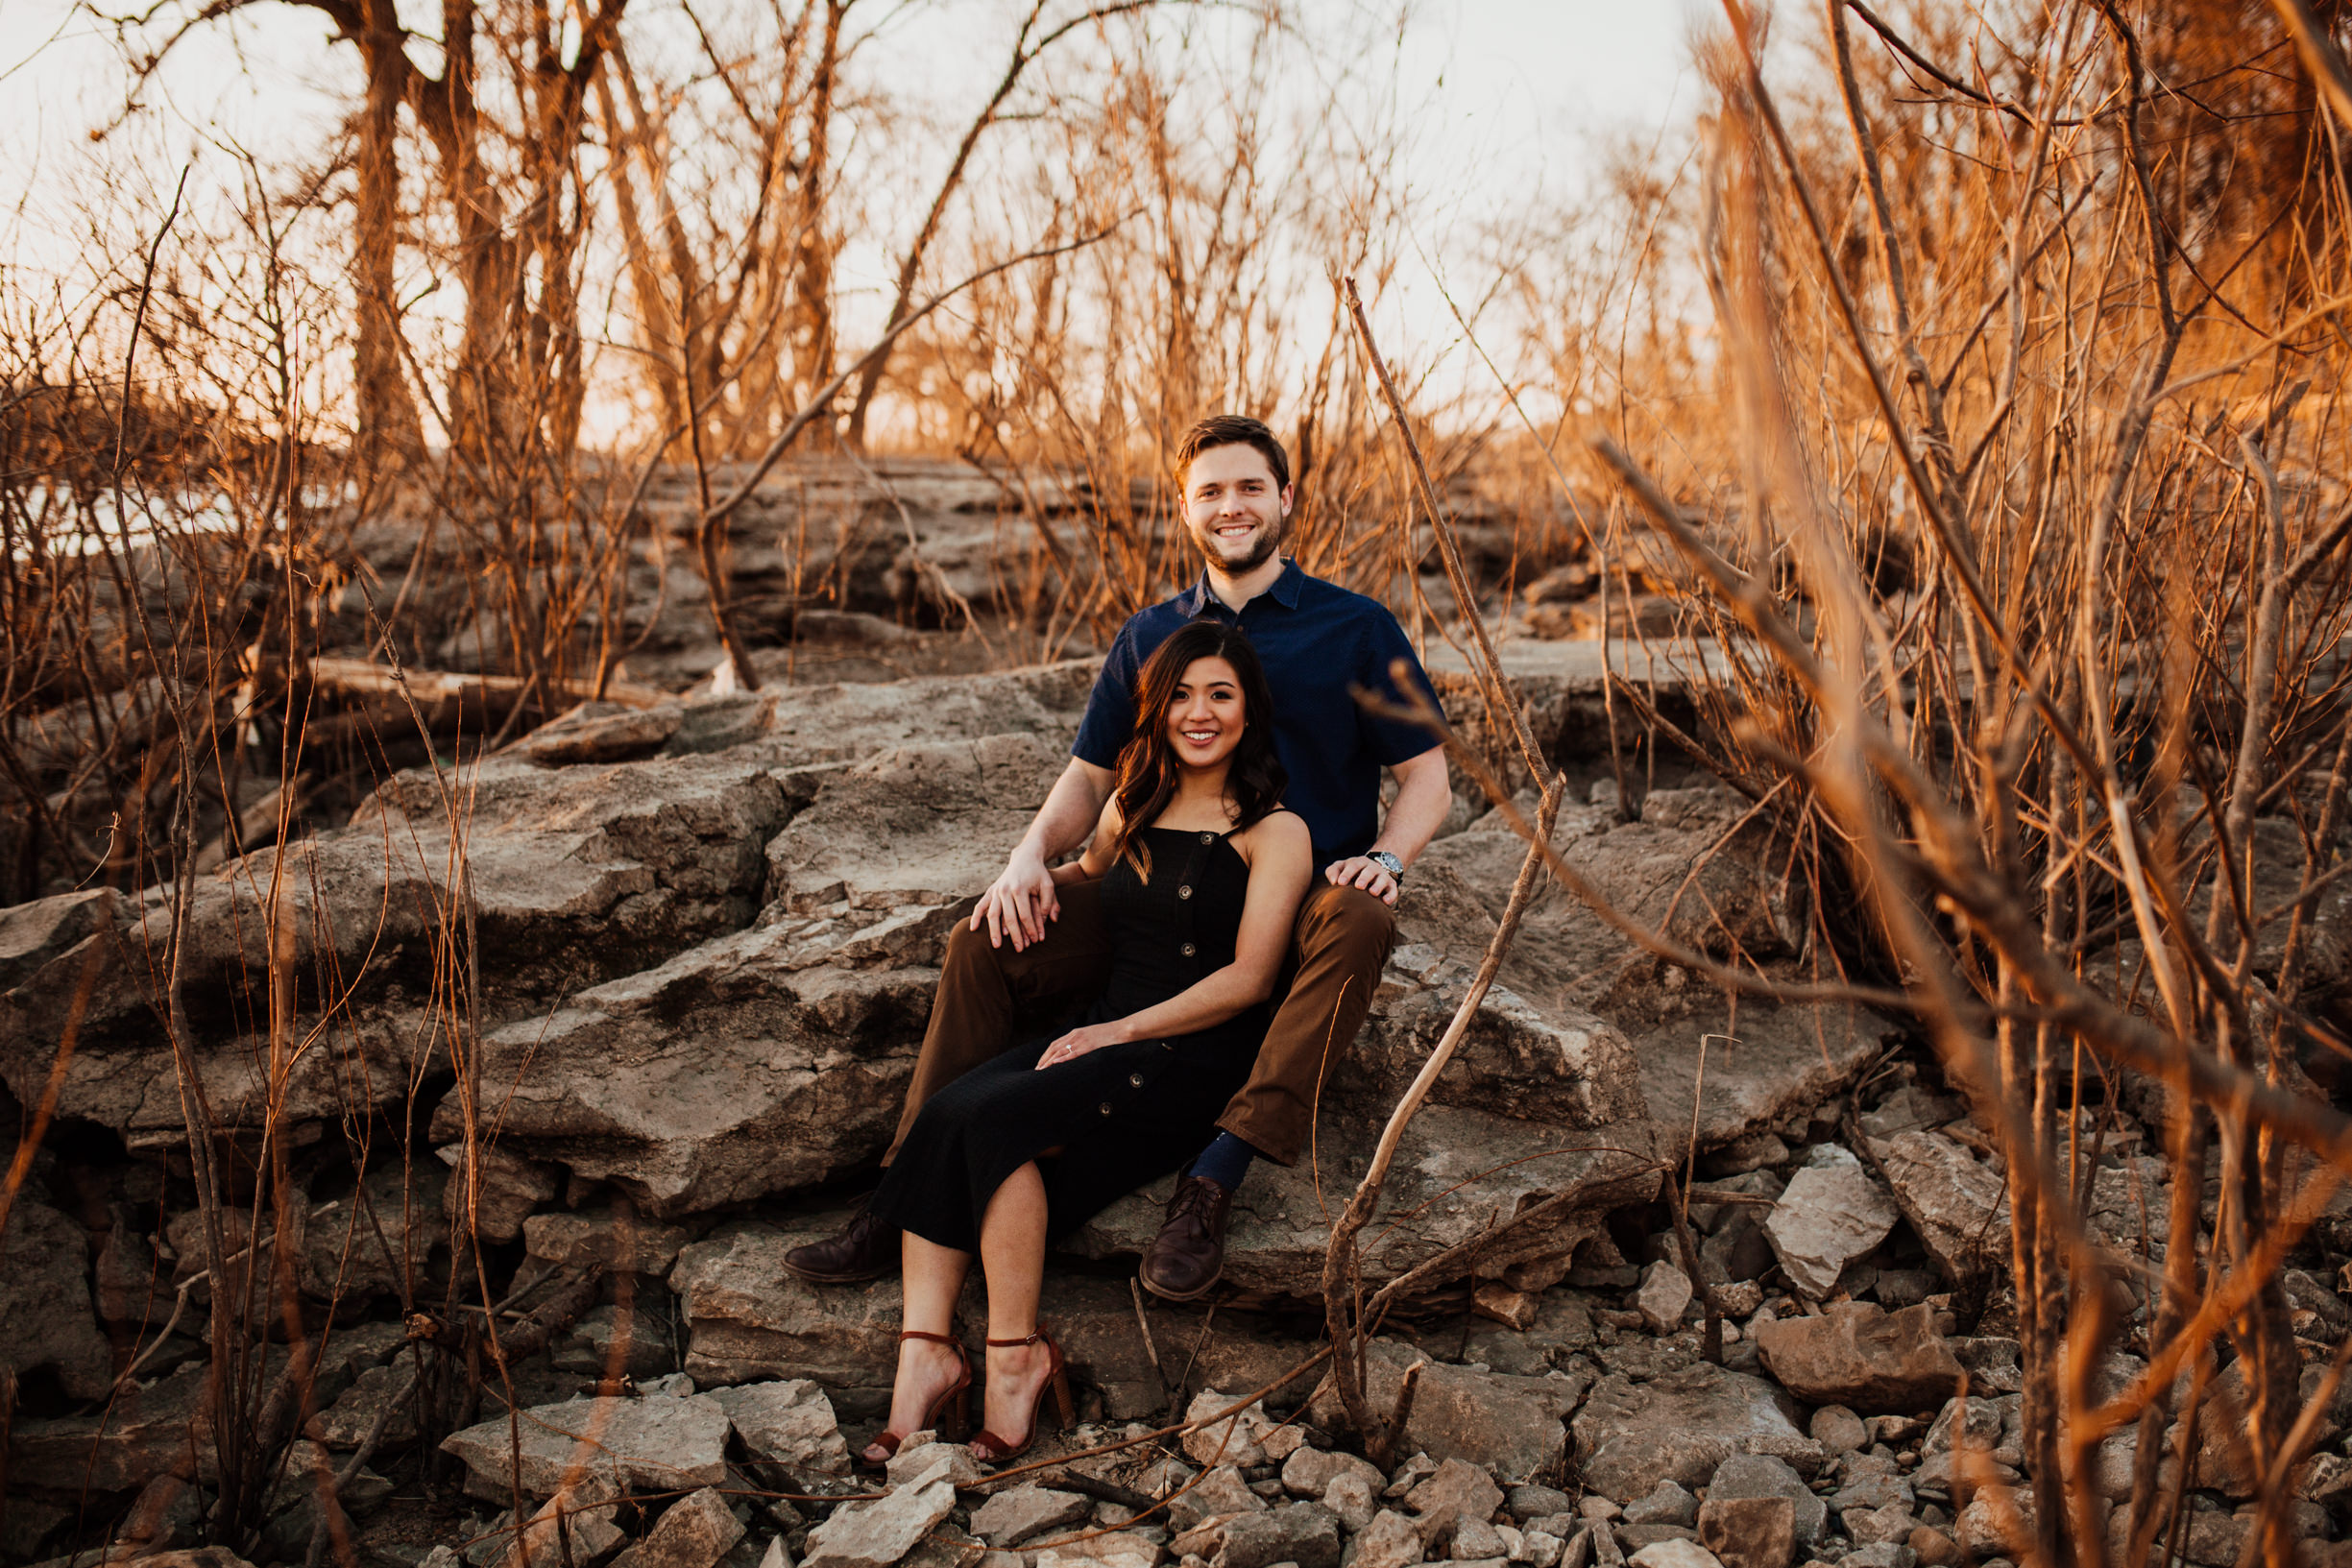 louisville-engagement-photographer-crystal-ludwick-photo-tammy-and-caleb-engagement-photography (21 of 32).jpg